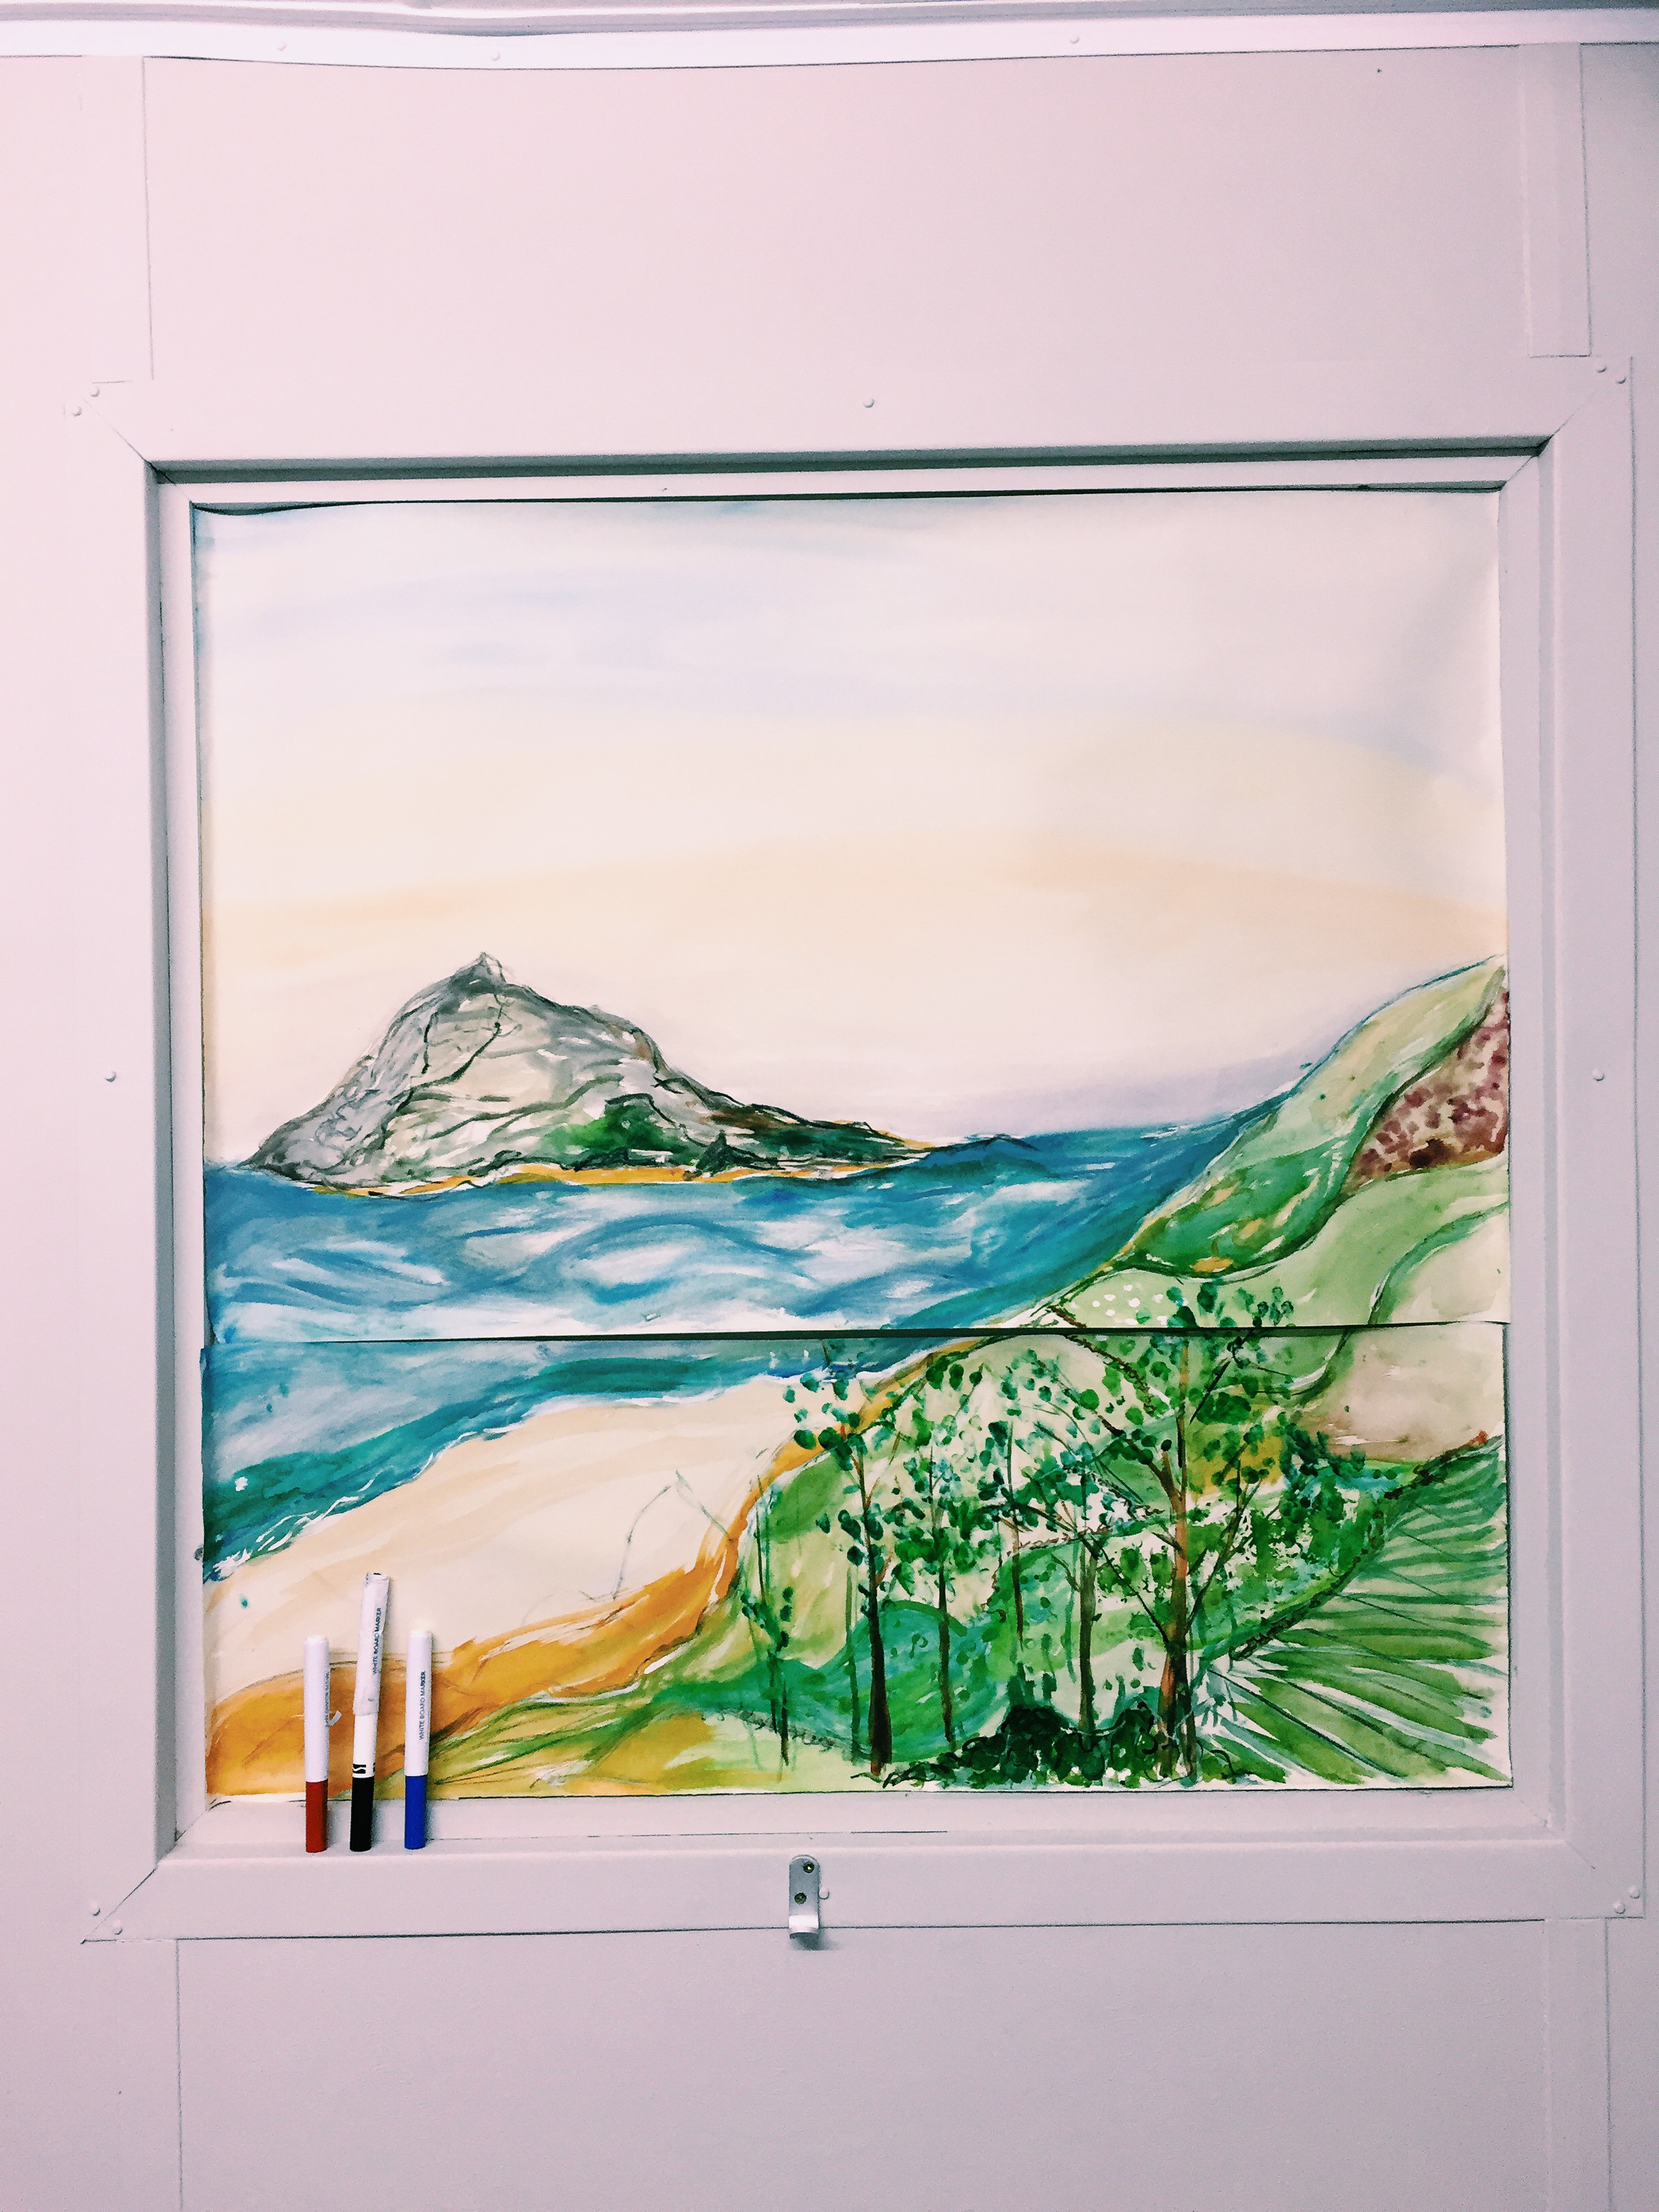 The isolation pods had no windows – so I decided to paint myself a view instead. Thank goodness for that big fat roll of lining paper... It came in handy as an exercise mat, paper to create a journal and art canvases too.